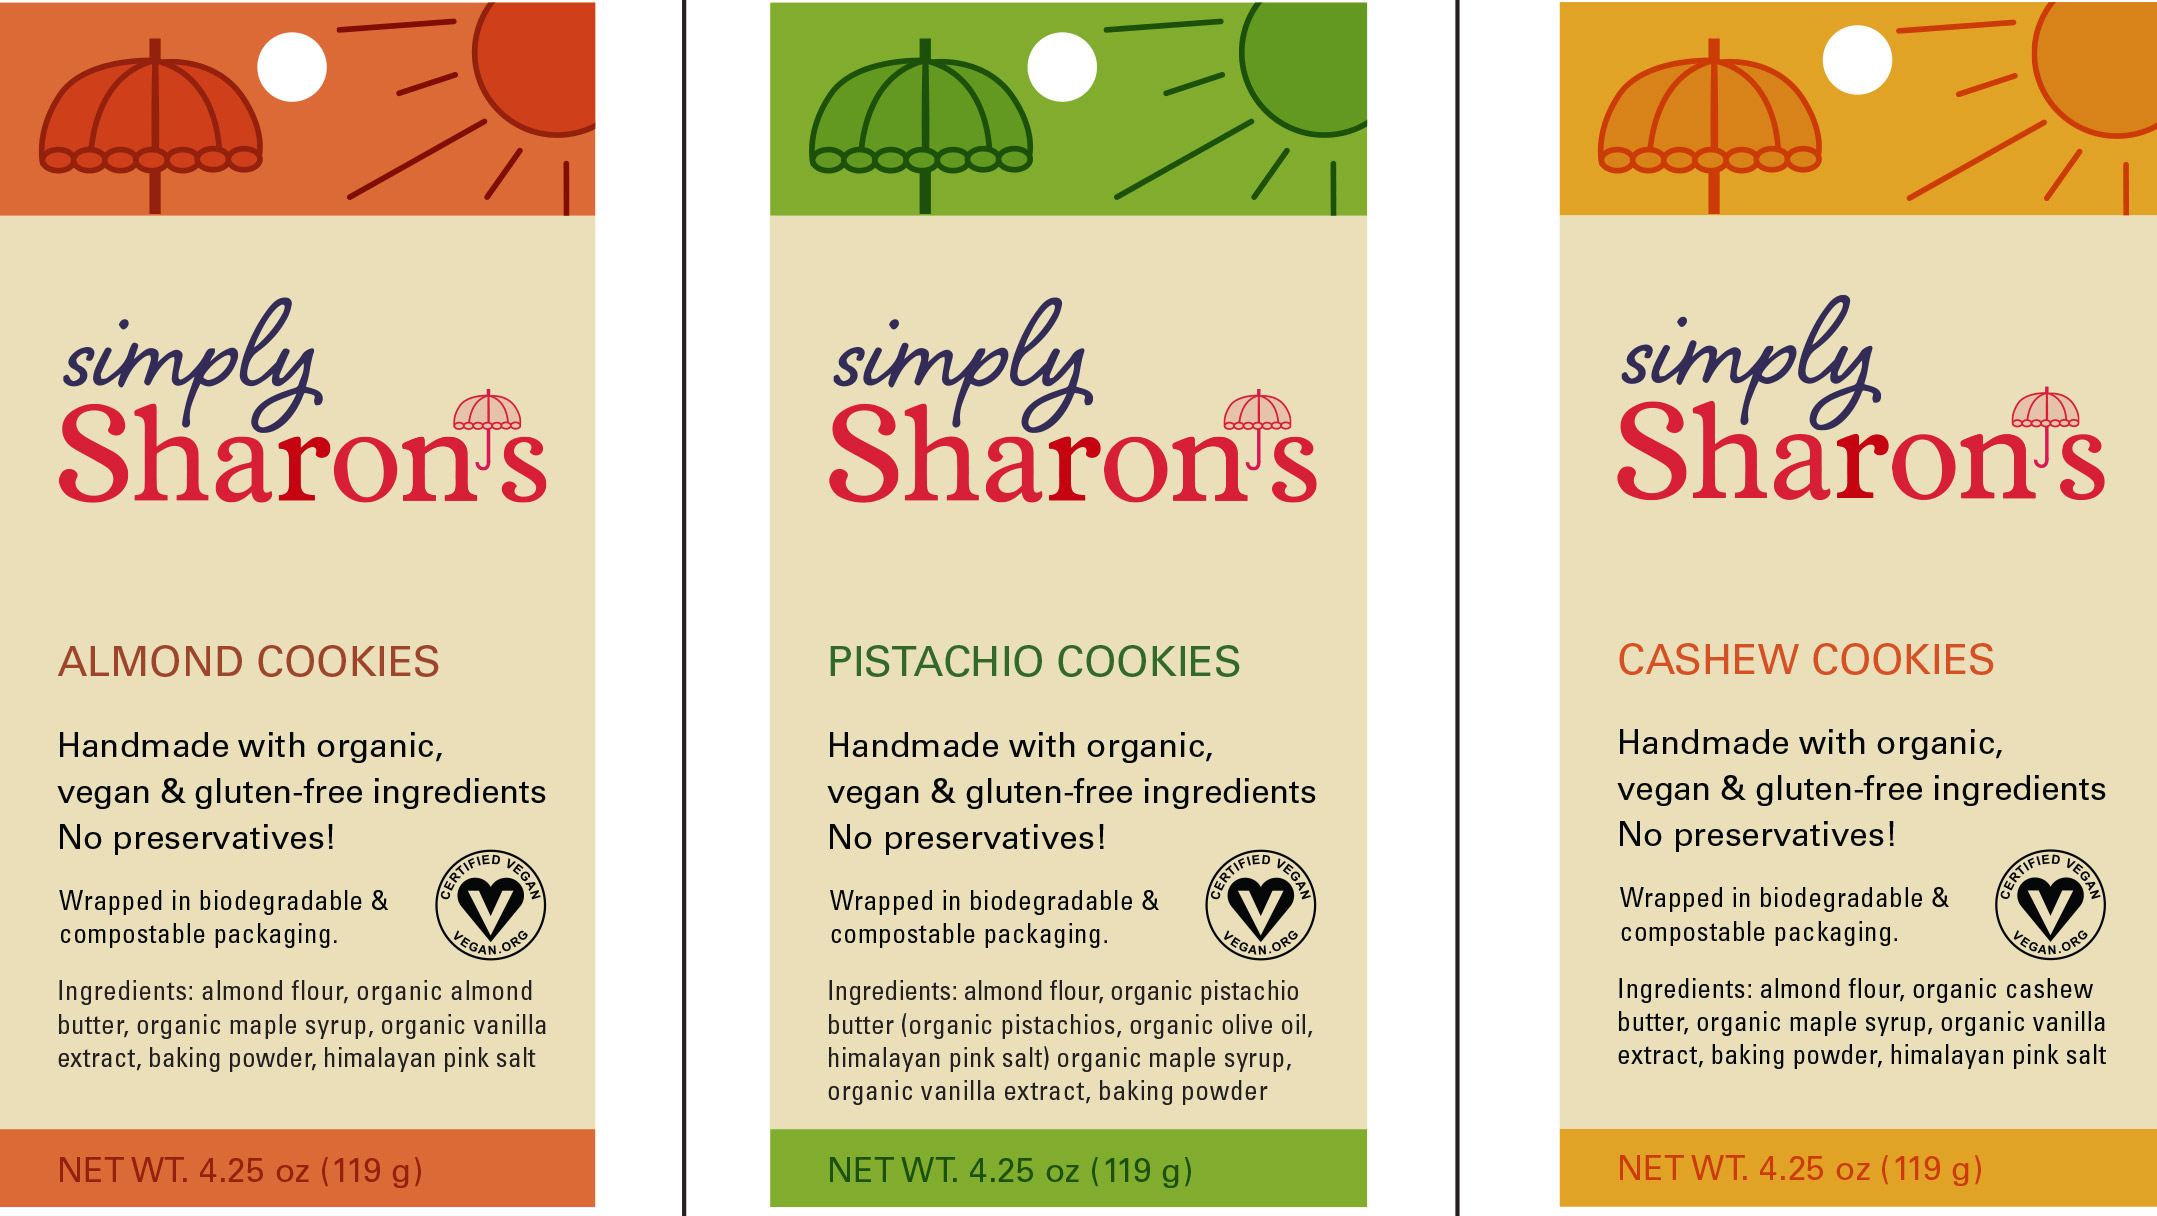 Simply Sharon's cookie package design label in earthy colors, inviting designs, and logo above ingredients list.